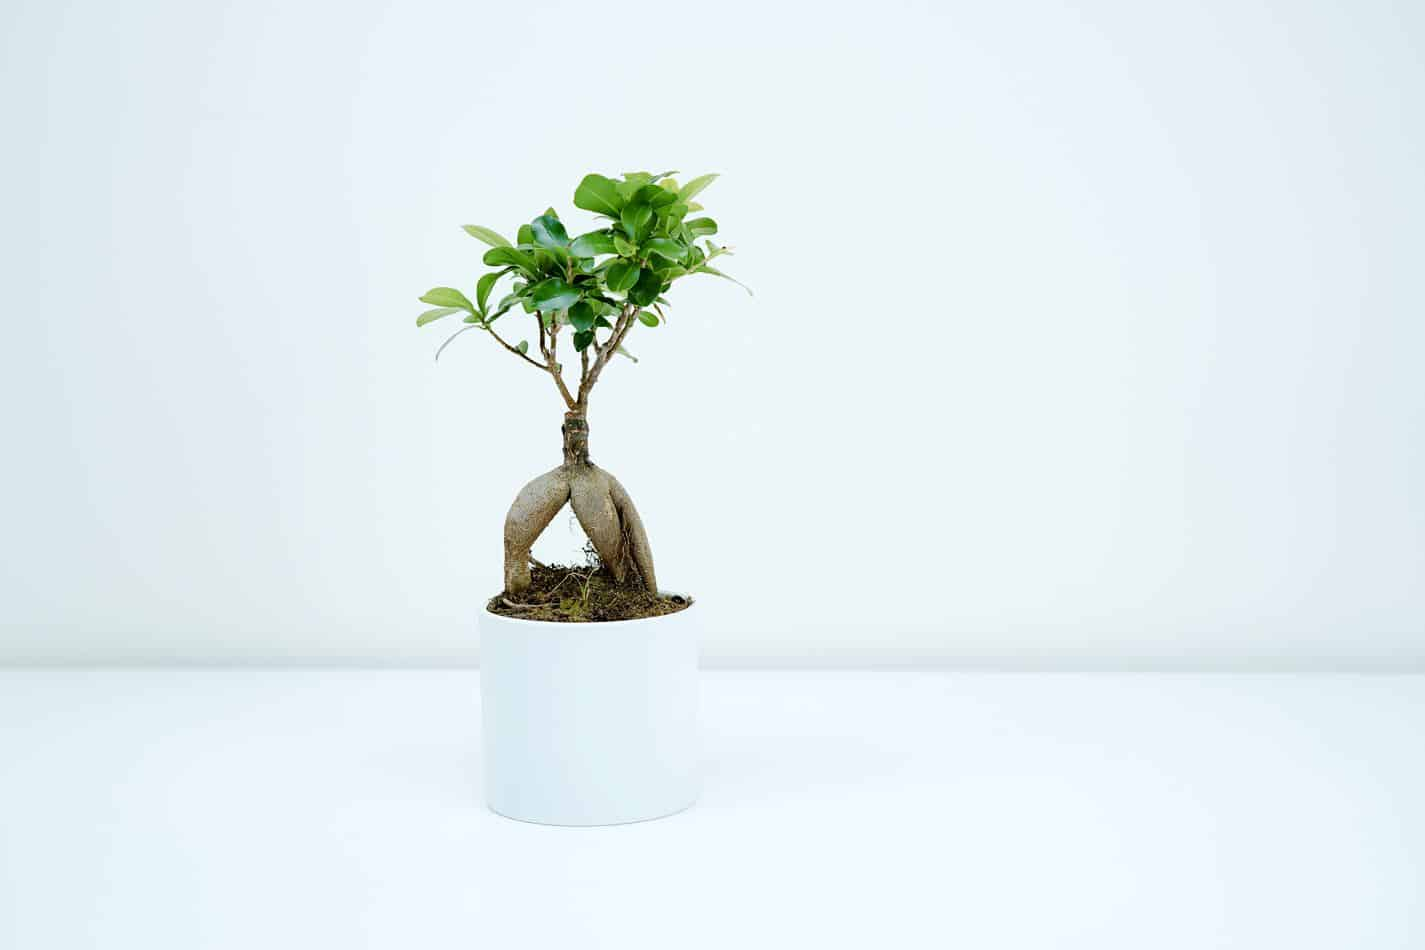 can a bonsai tree live in an office